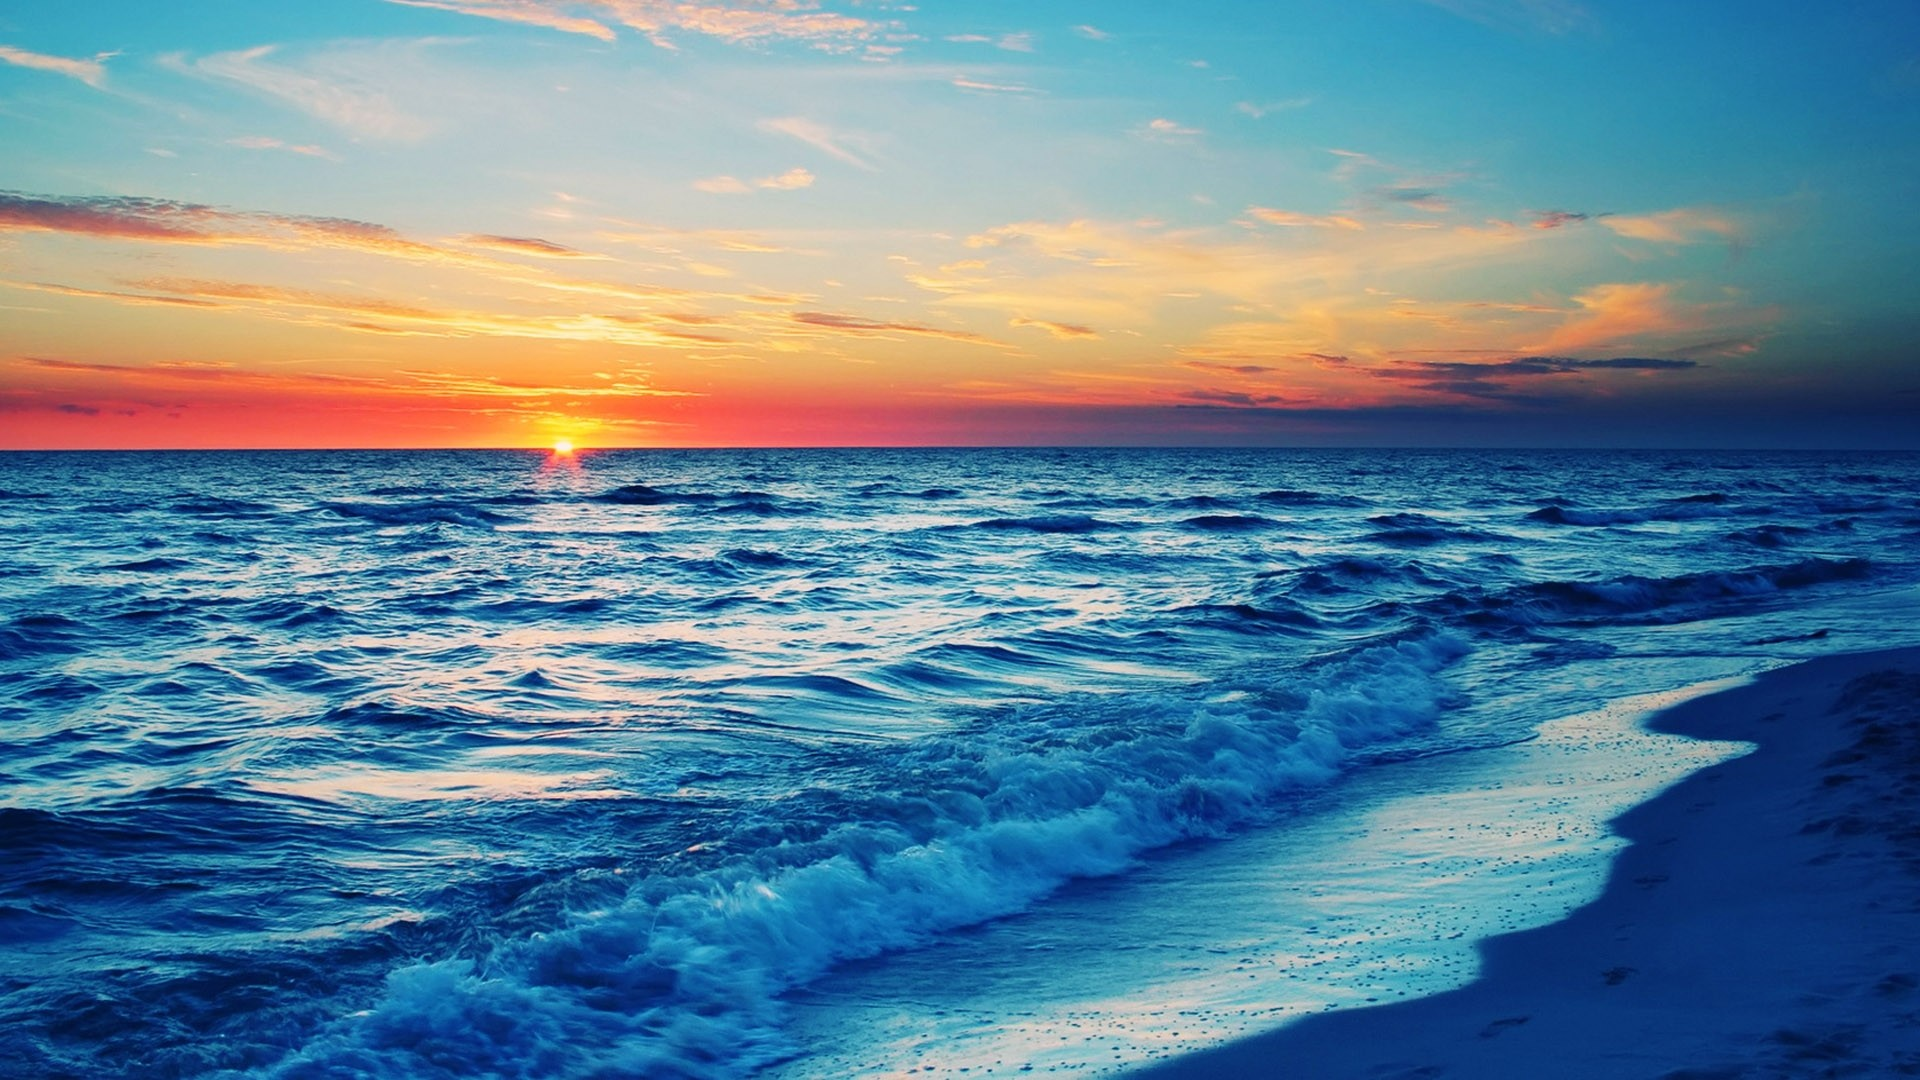 beach hd wallpapers ·①